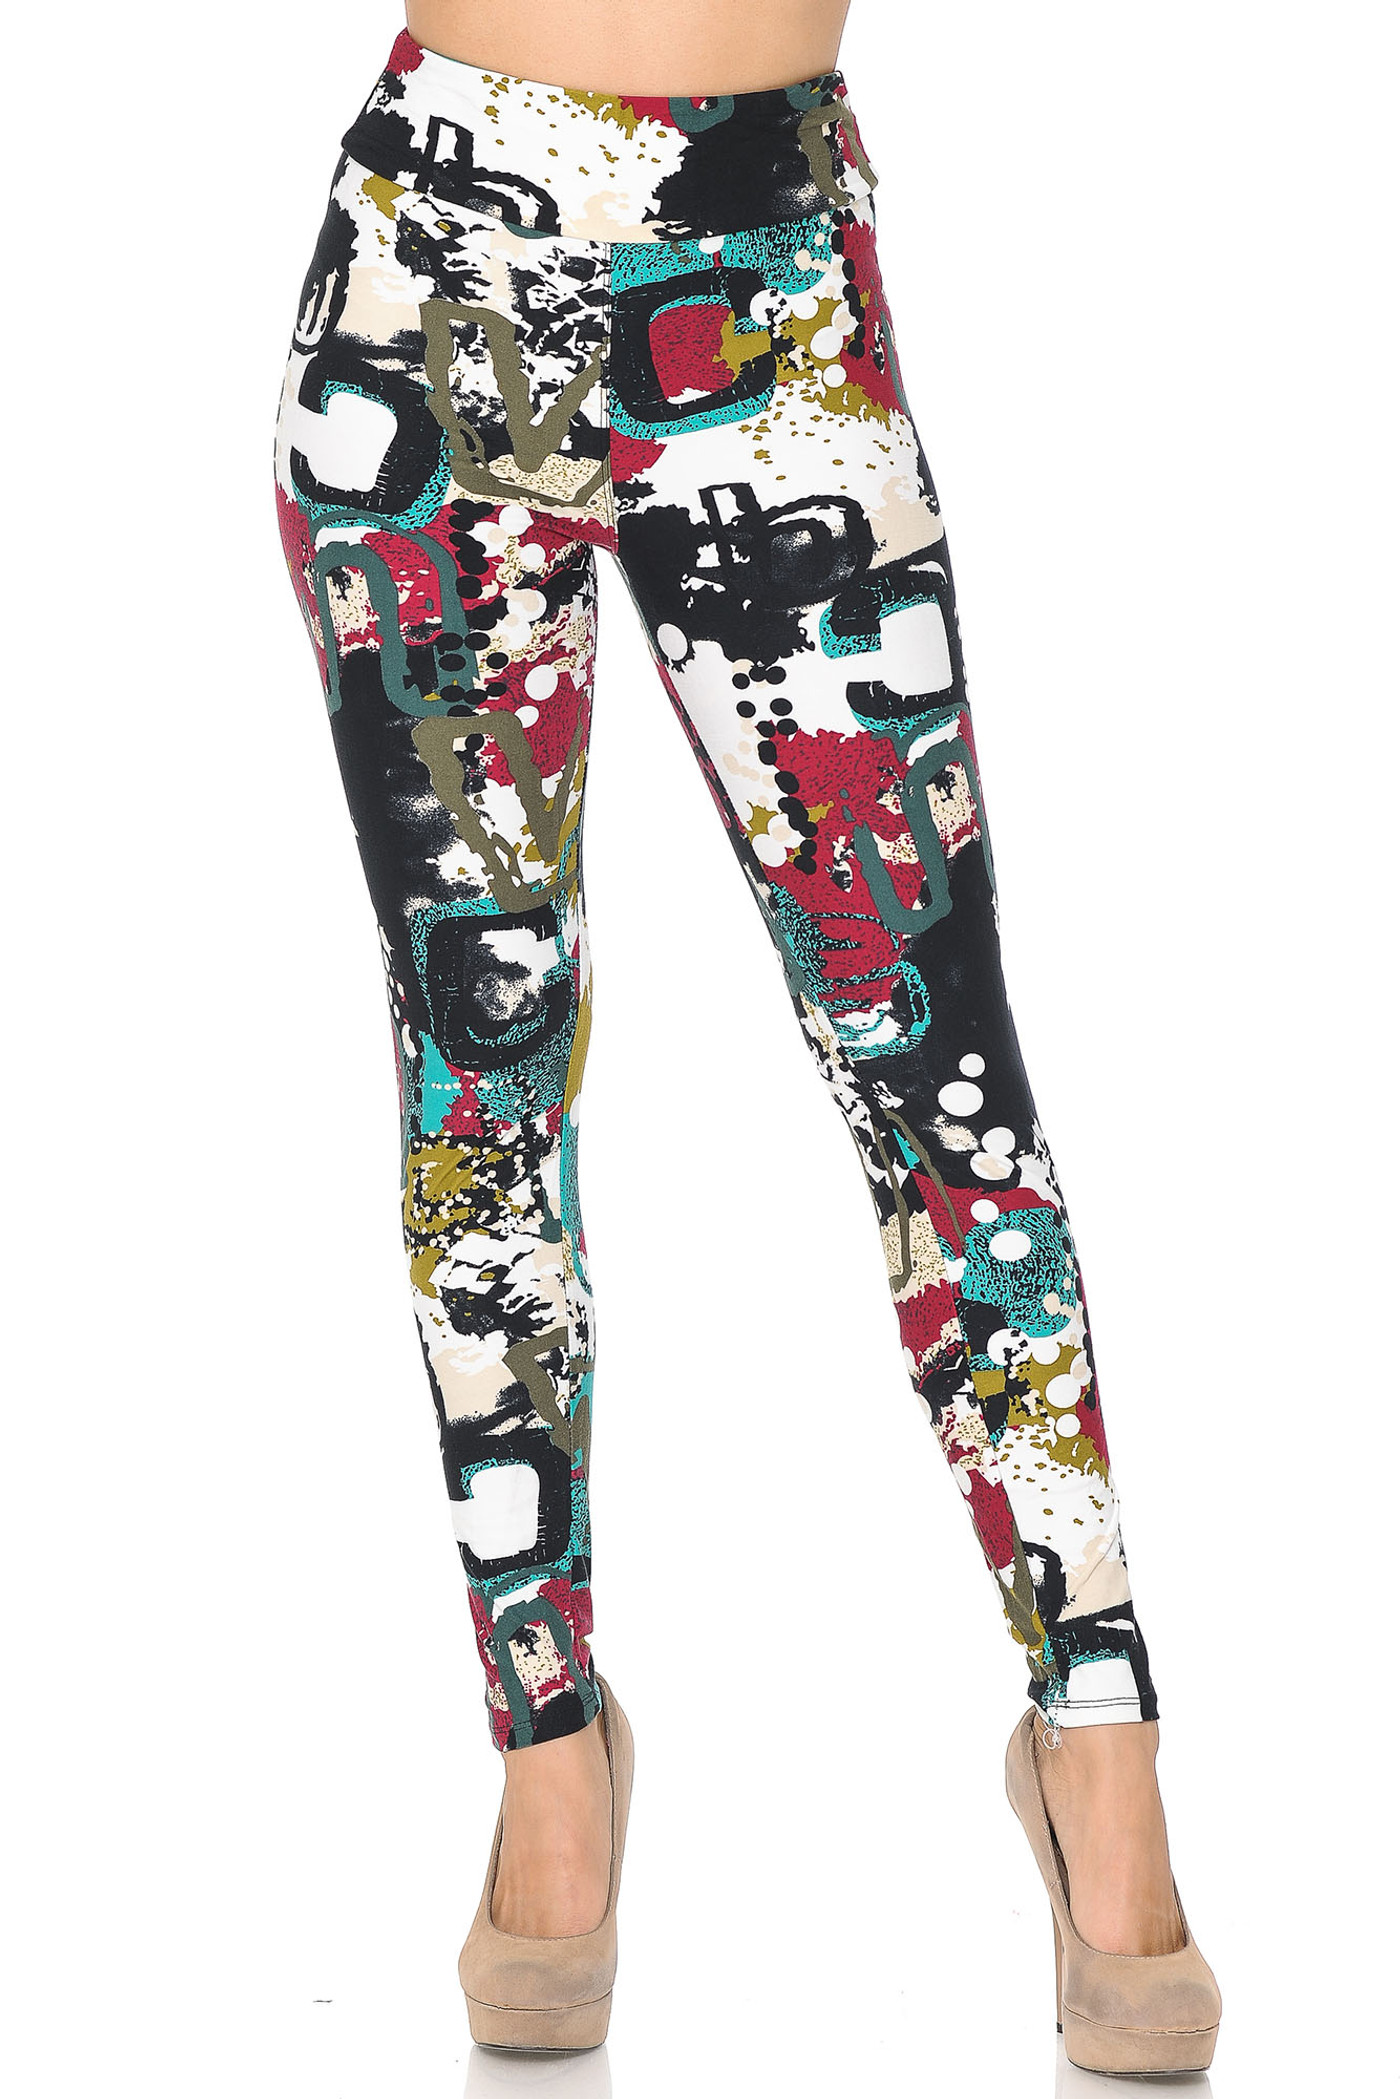 Summer Picasso High Waisted Double Brushed Leggings